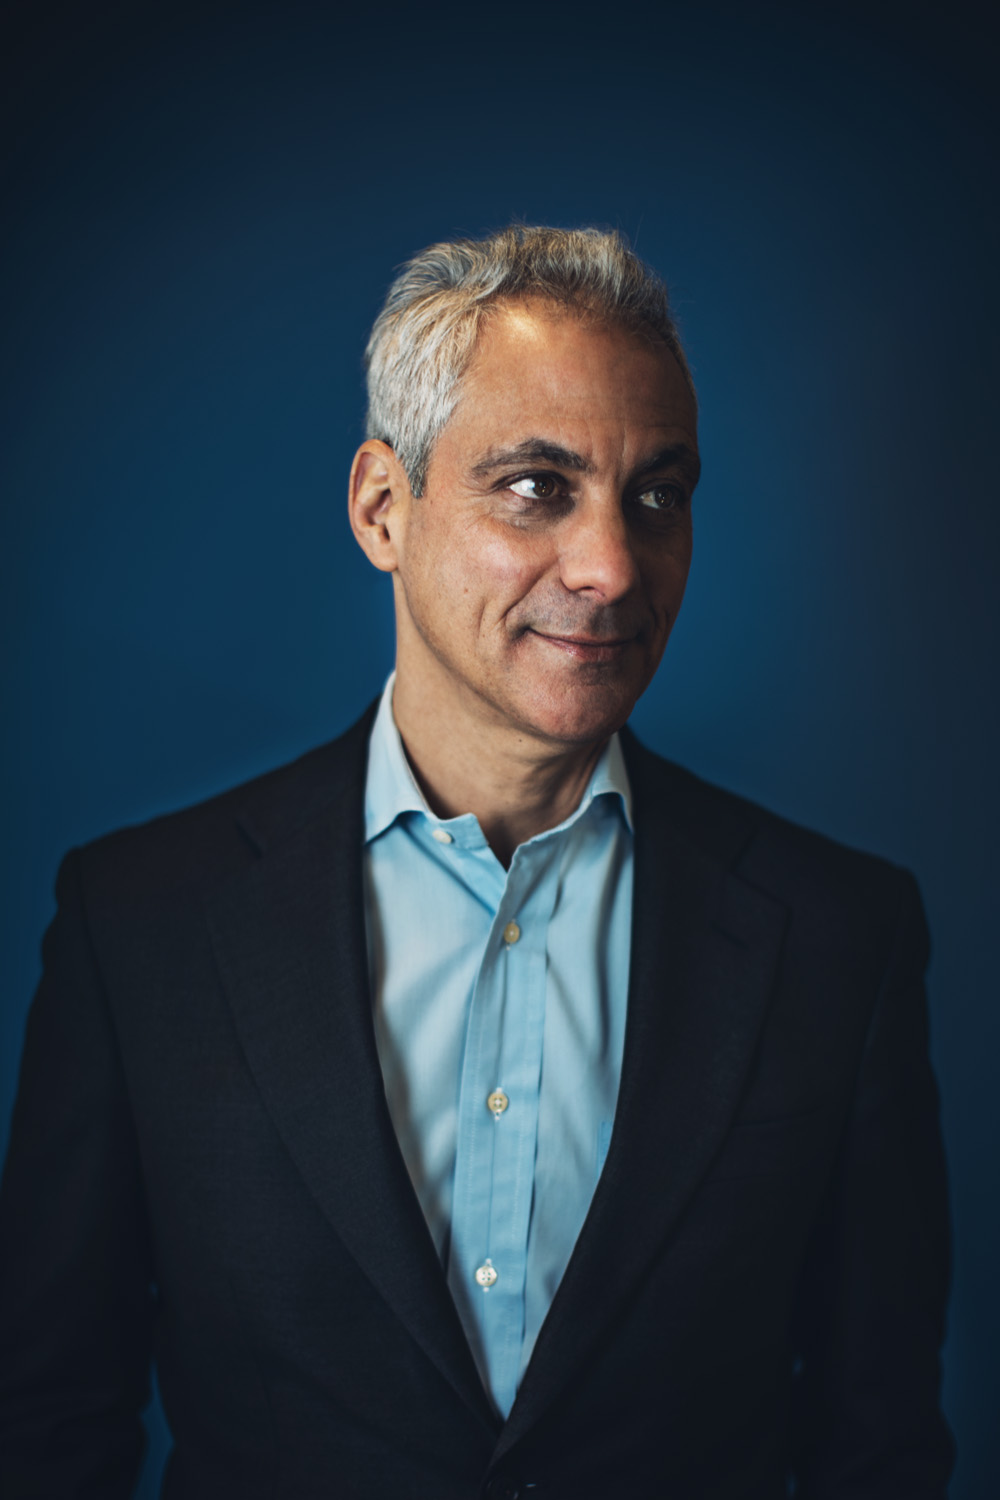 2019_03_19_ChicagoMag_Rahm0235_ClaytonEdit_low.jpg